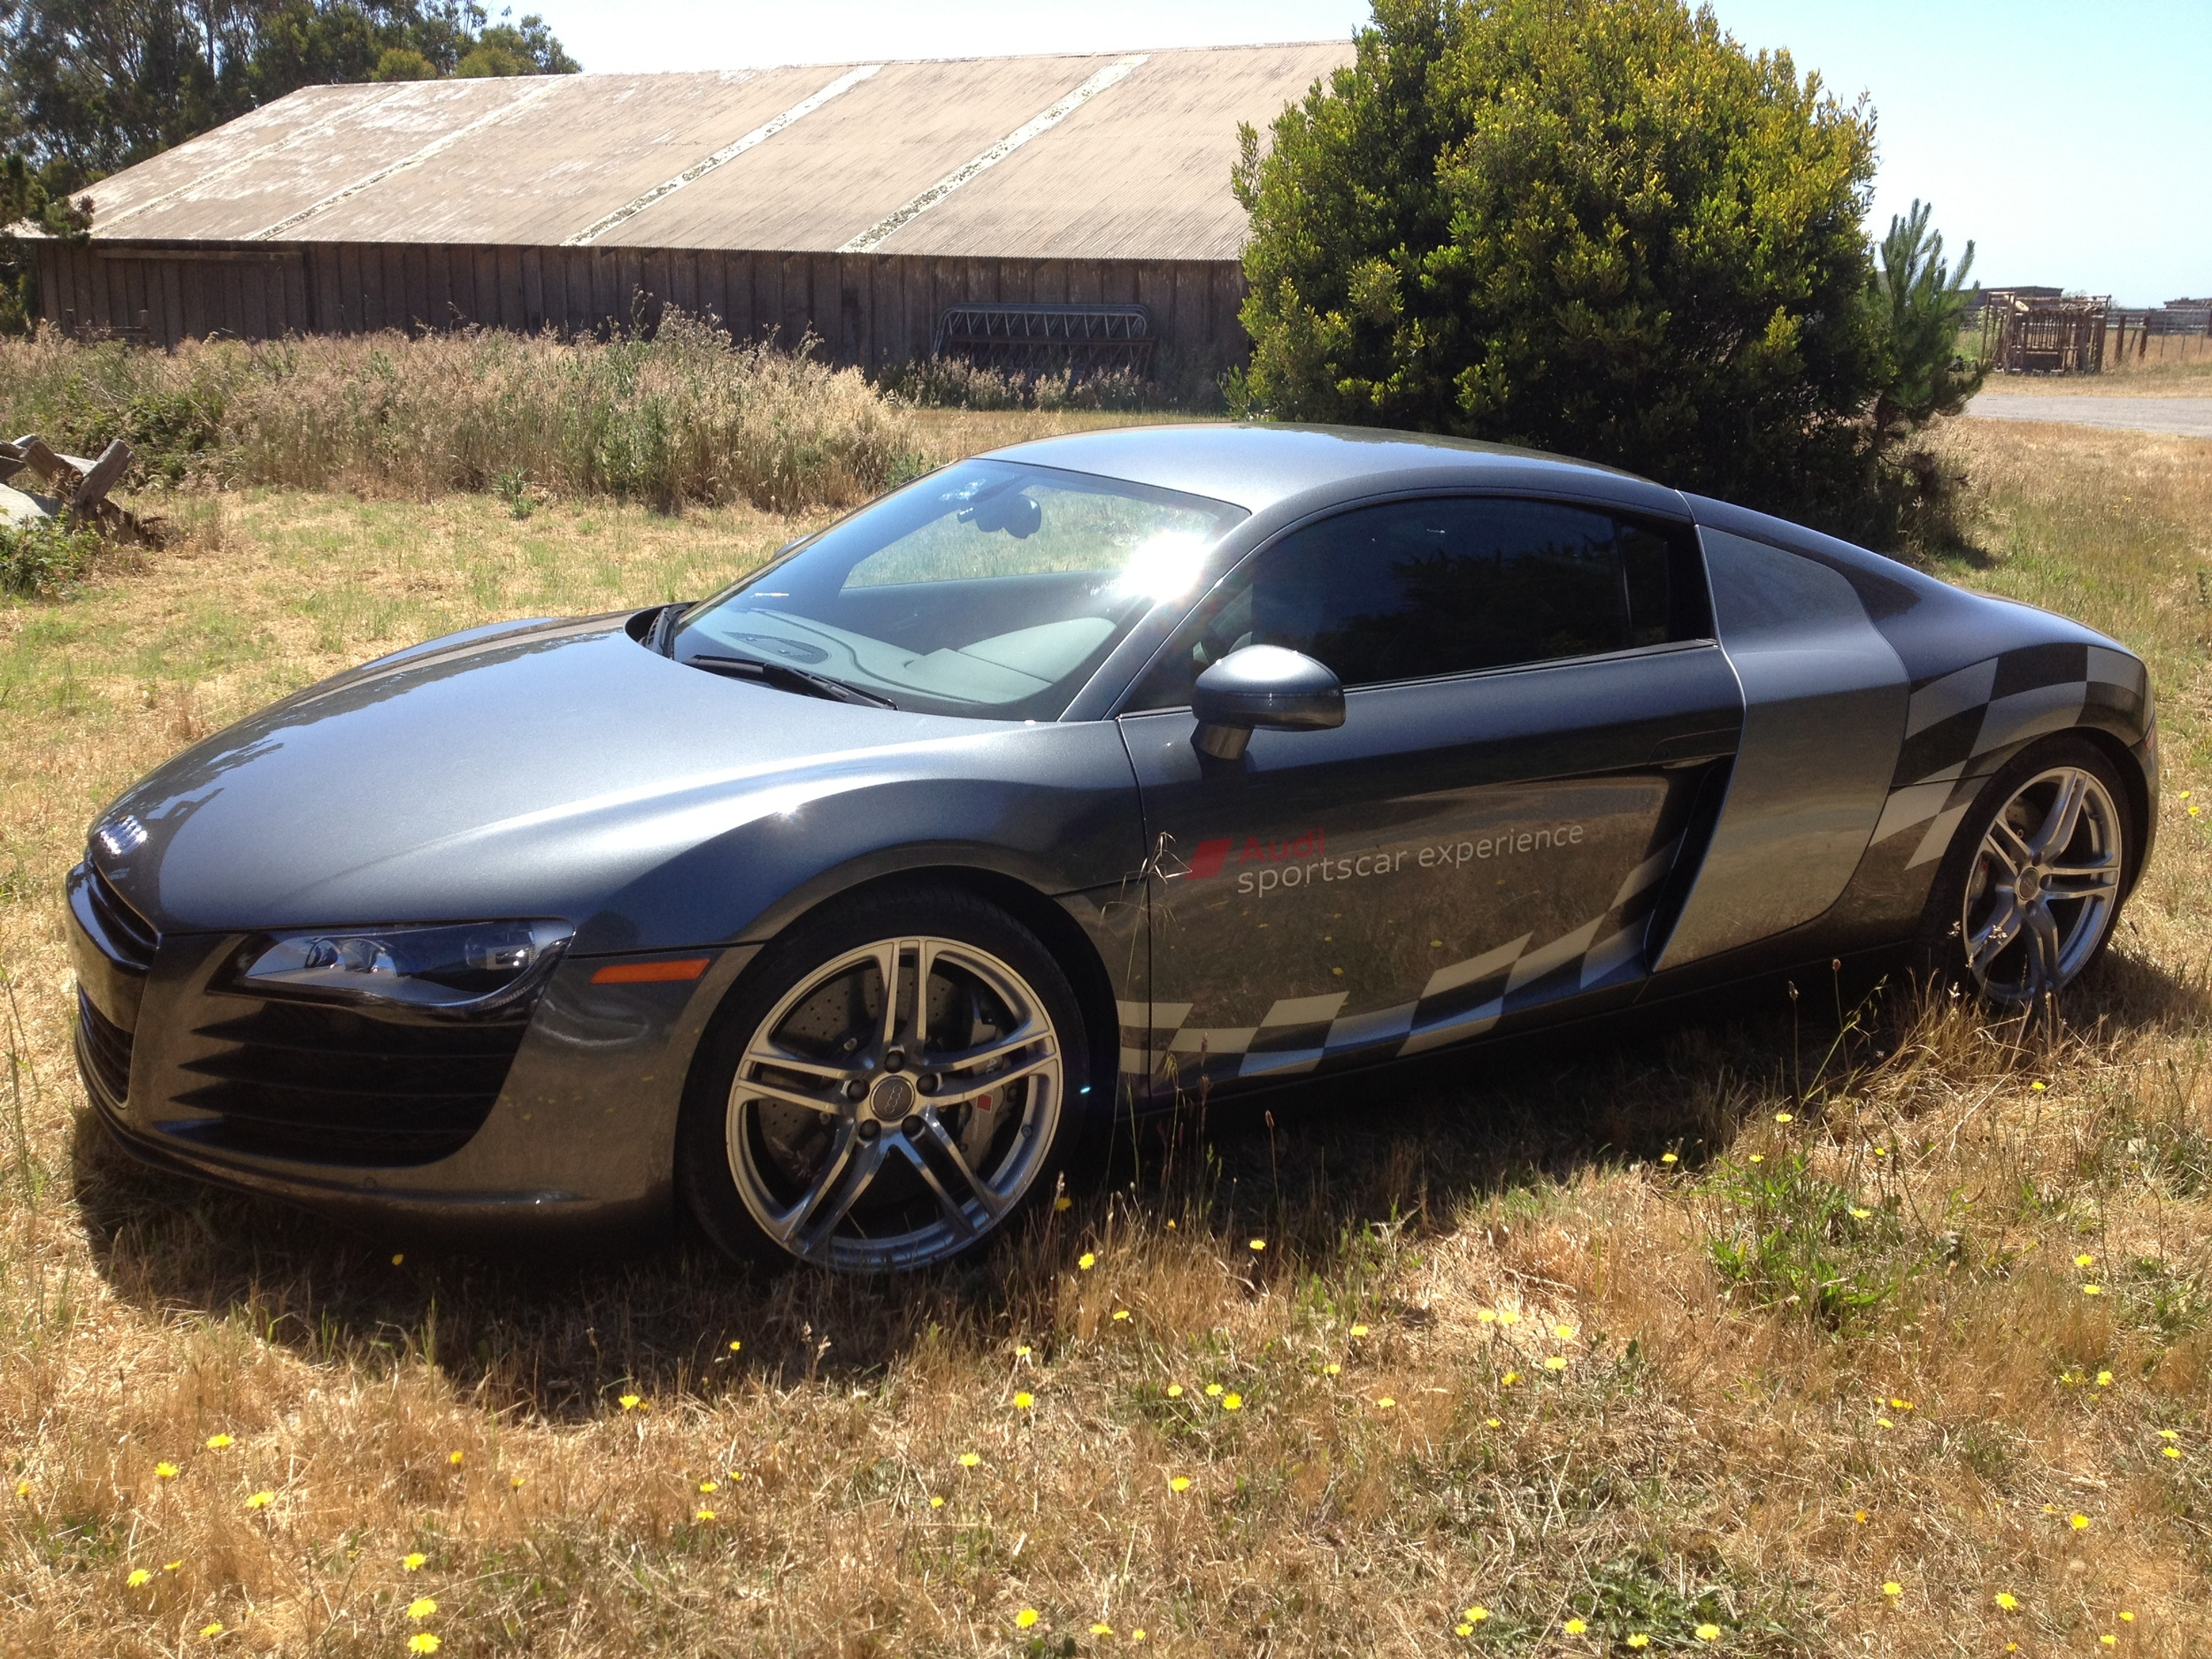 17 the R8 on location at Niman-Schell Ranch..JPG